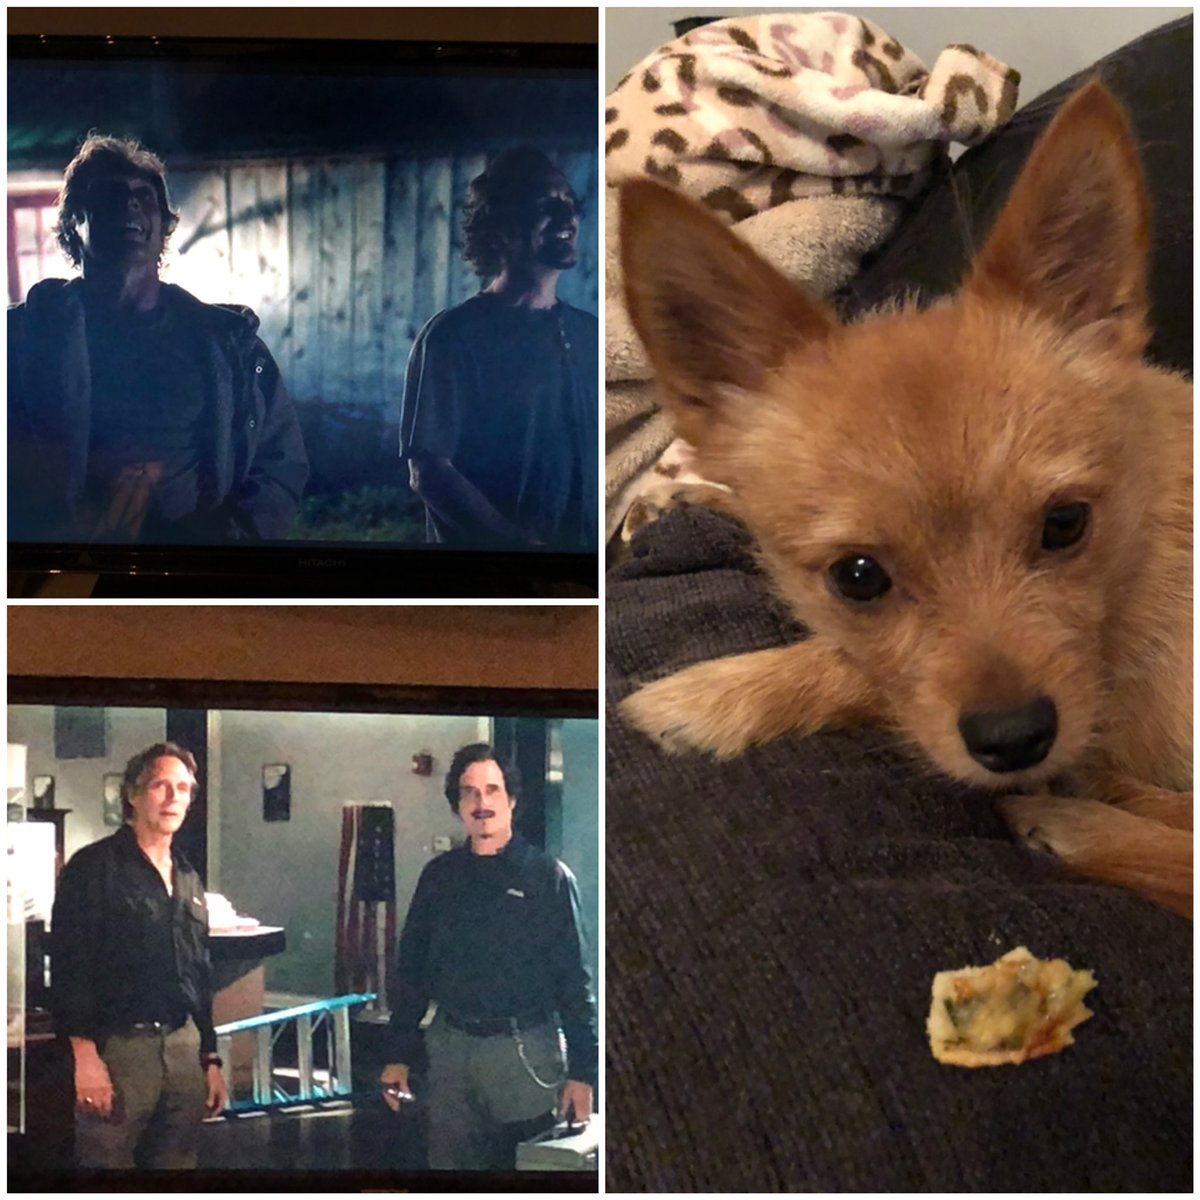 #Pizza & #movie nite with Pixie!  #ColdBrookTheFilm is just beautiful & superbly acted by @KimFCoates & William Fitchner. The world needs this feel good film right now xx  pic.twitter.com/OkK9AbKkCp